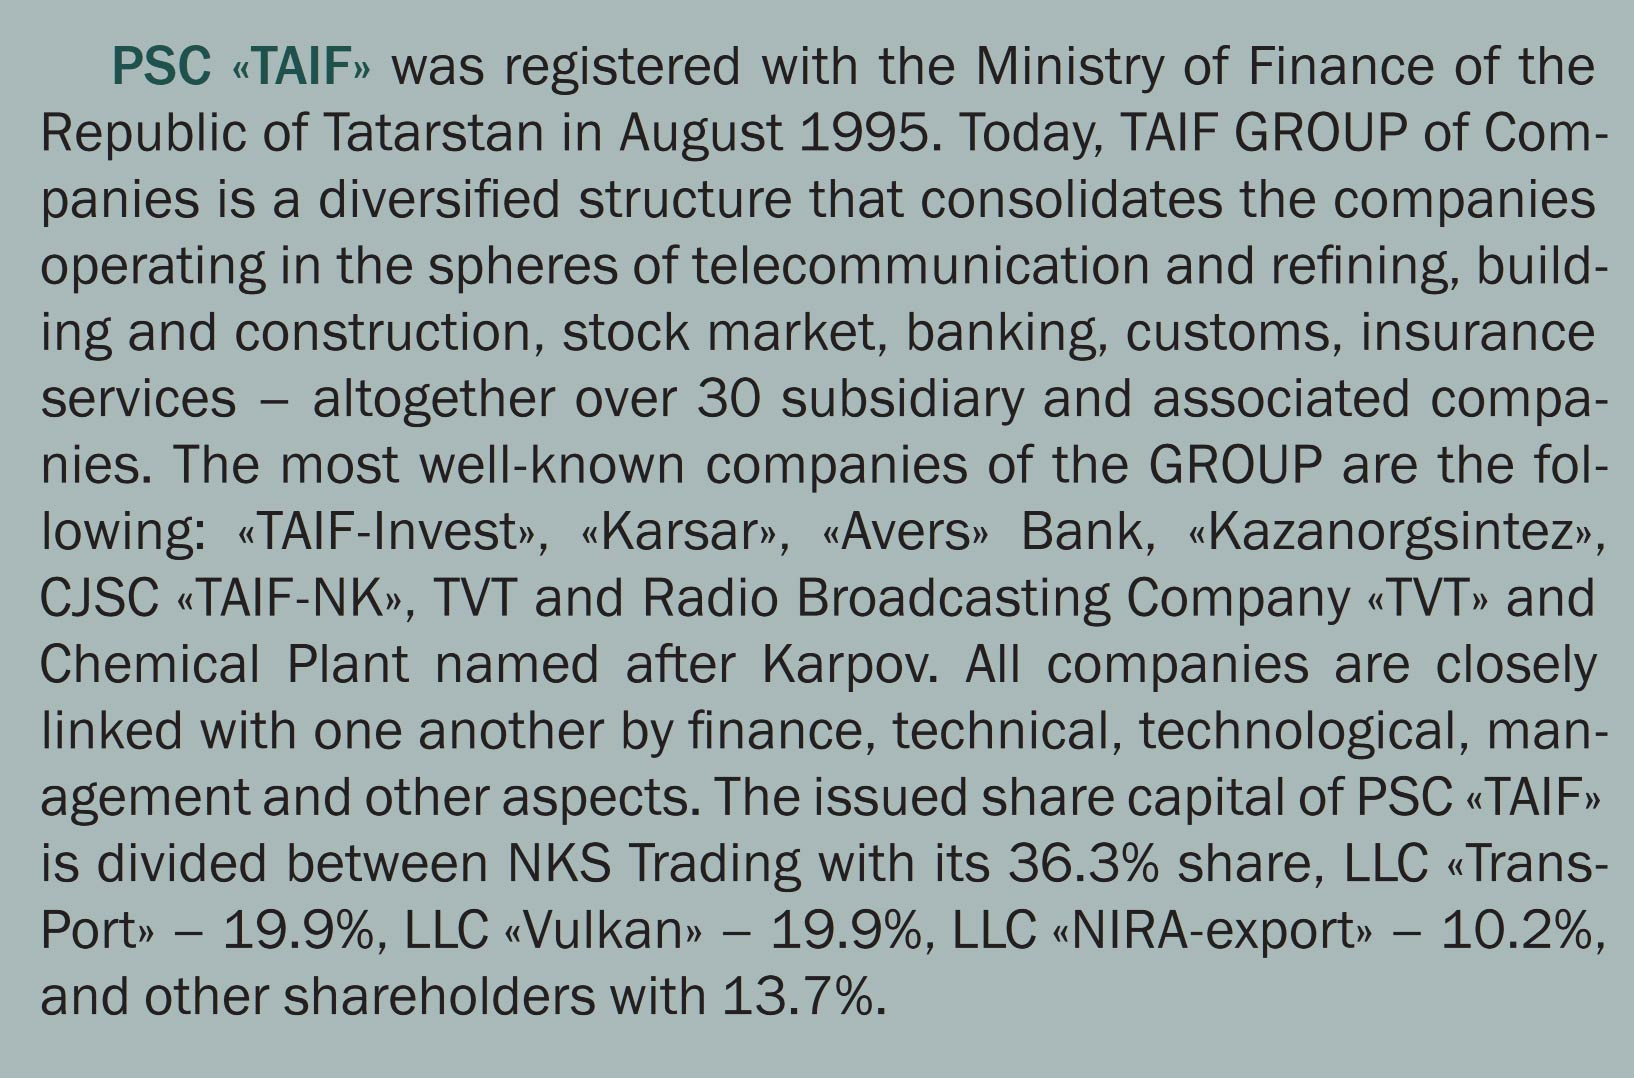 Tatar American Investments & Finance (TAIF)